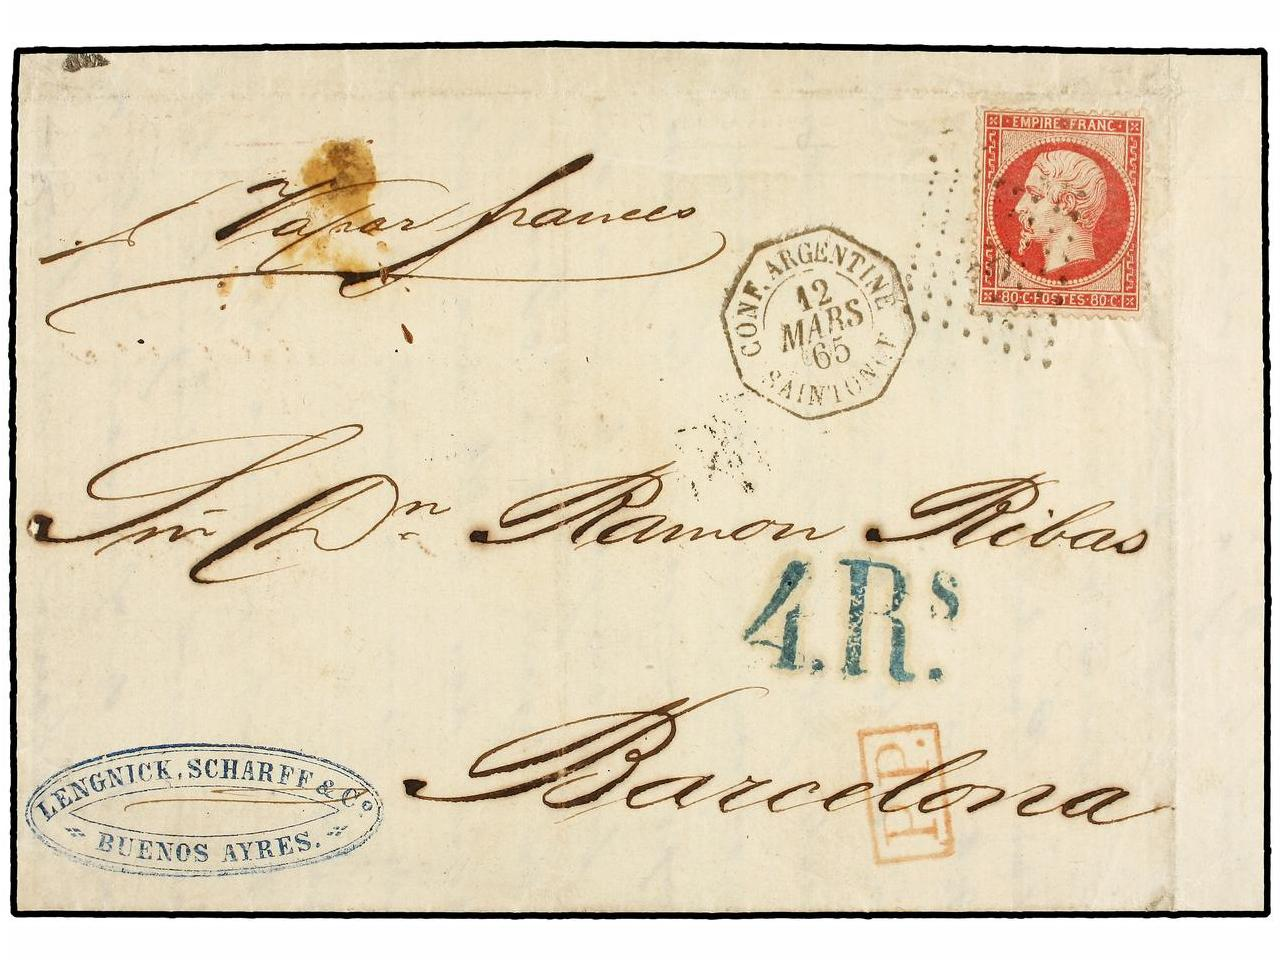 ✉ ARGENTINA. Sc. 24. 1865 (March 12). Entire letter from BUE